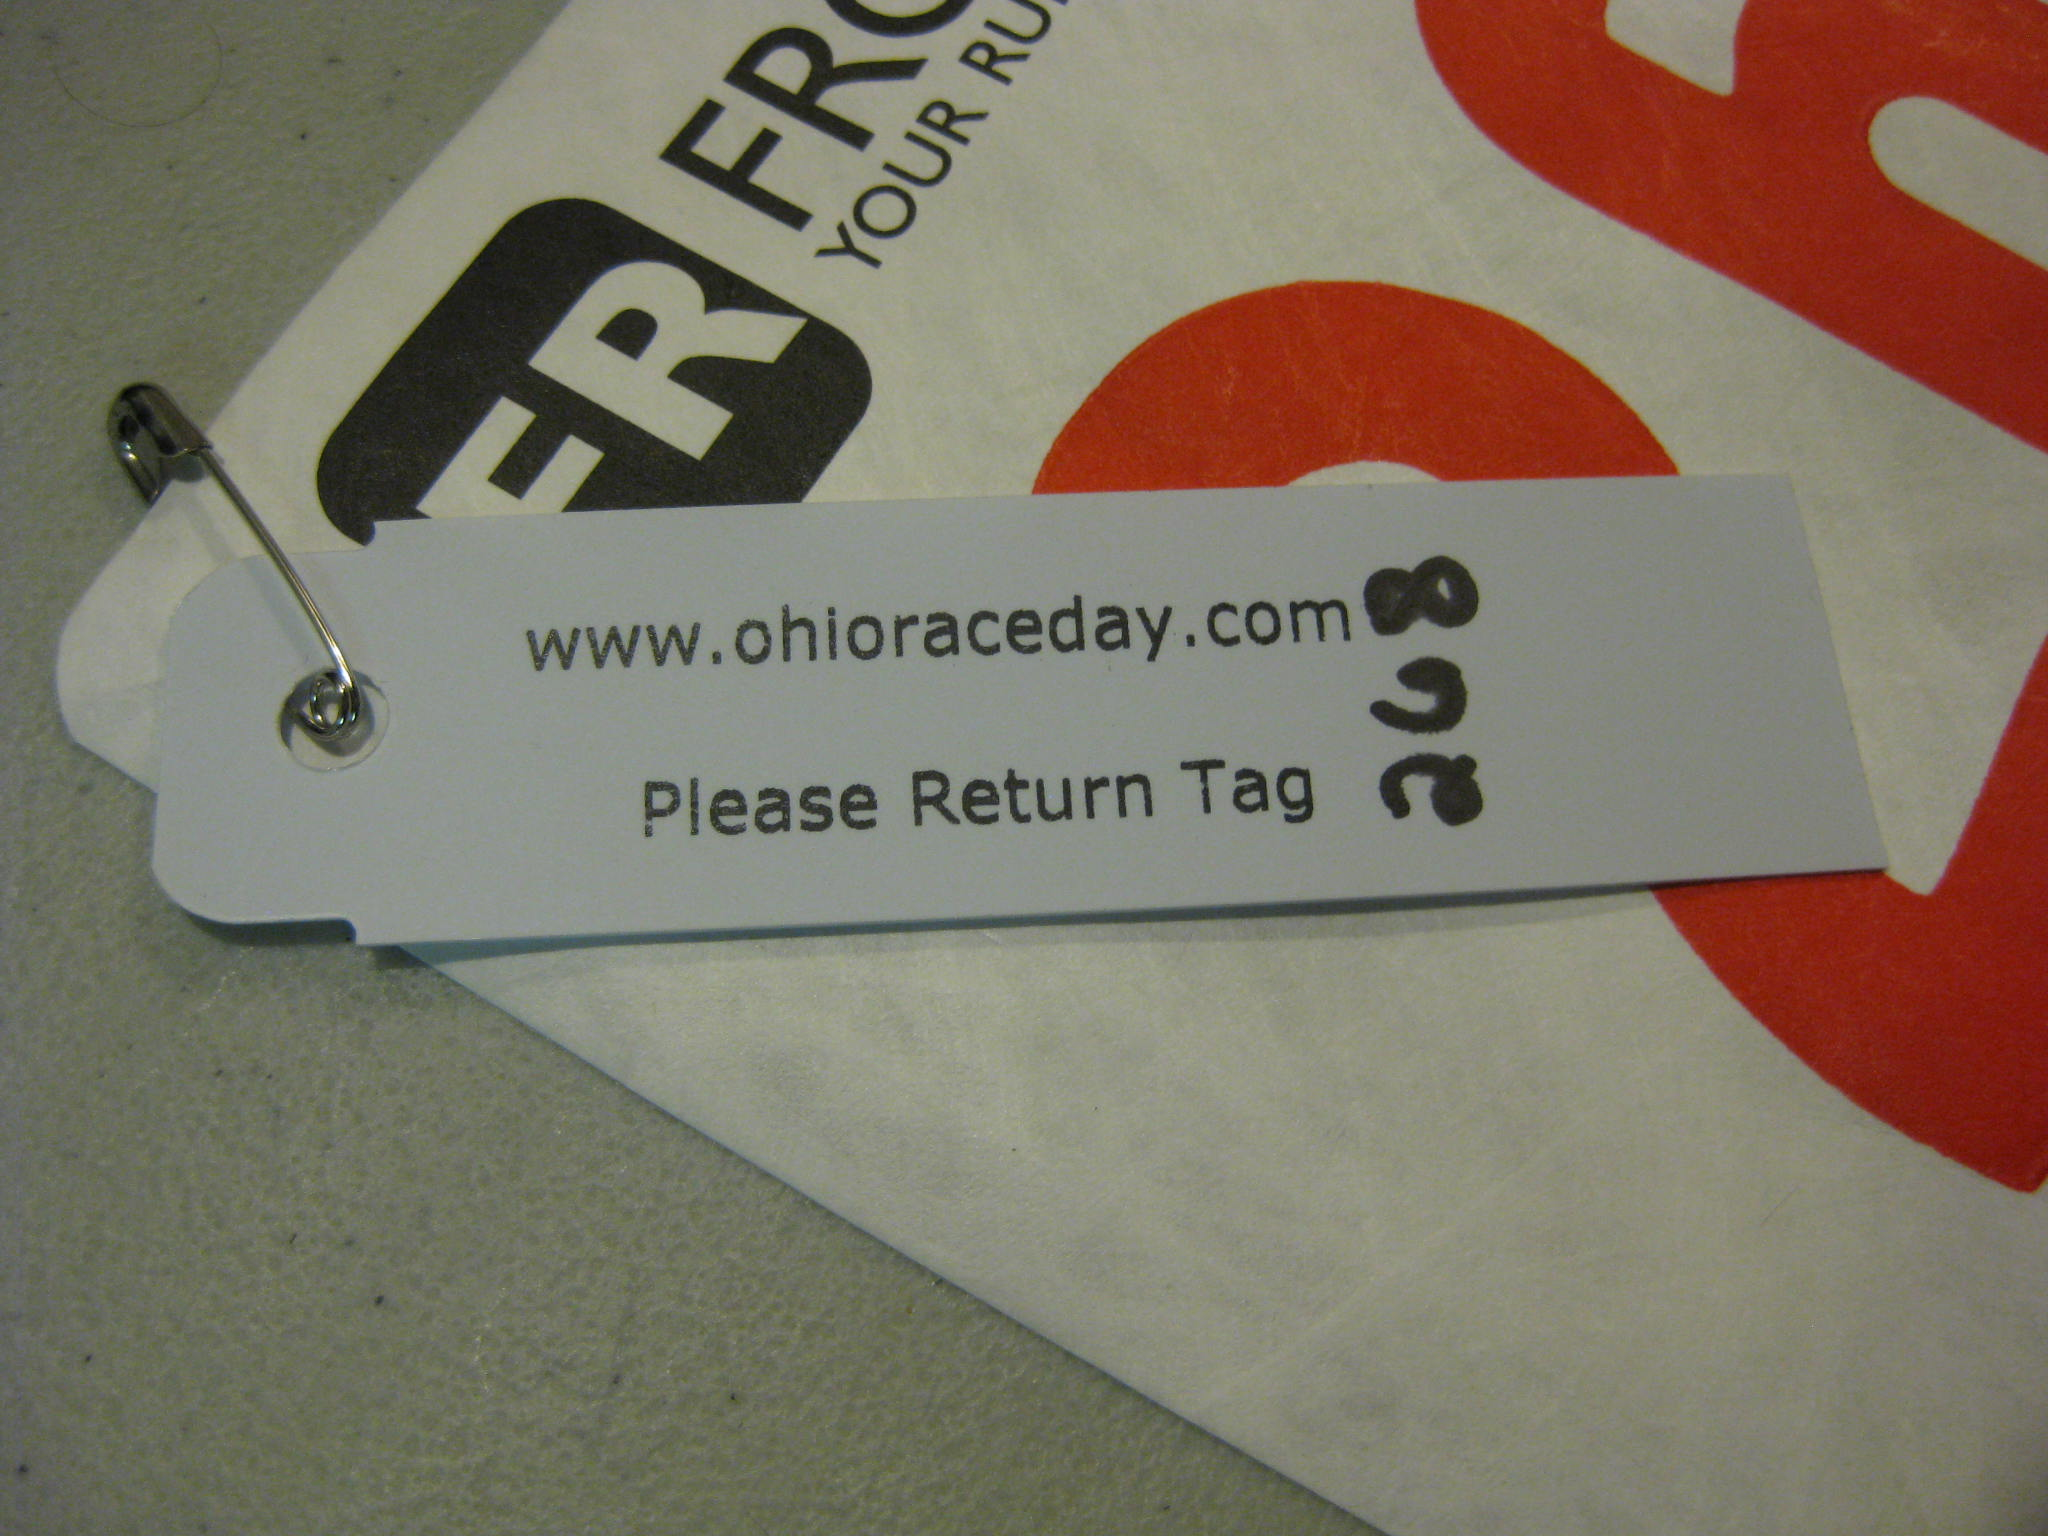 rfid tag and bib